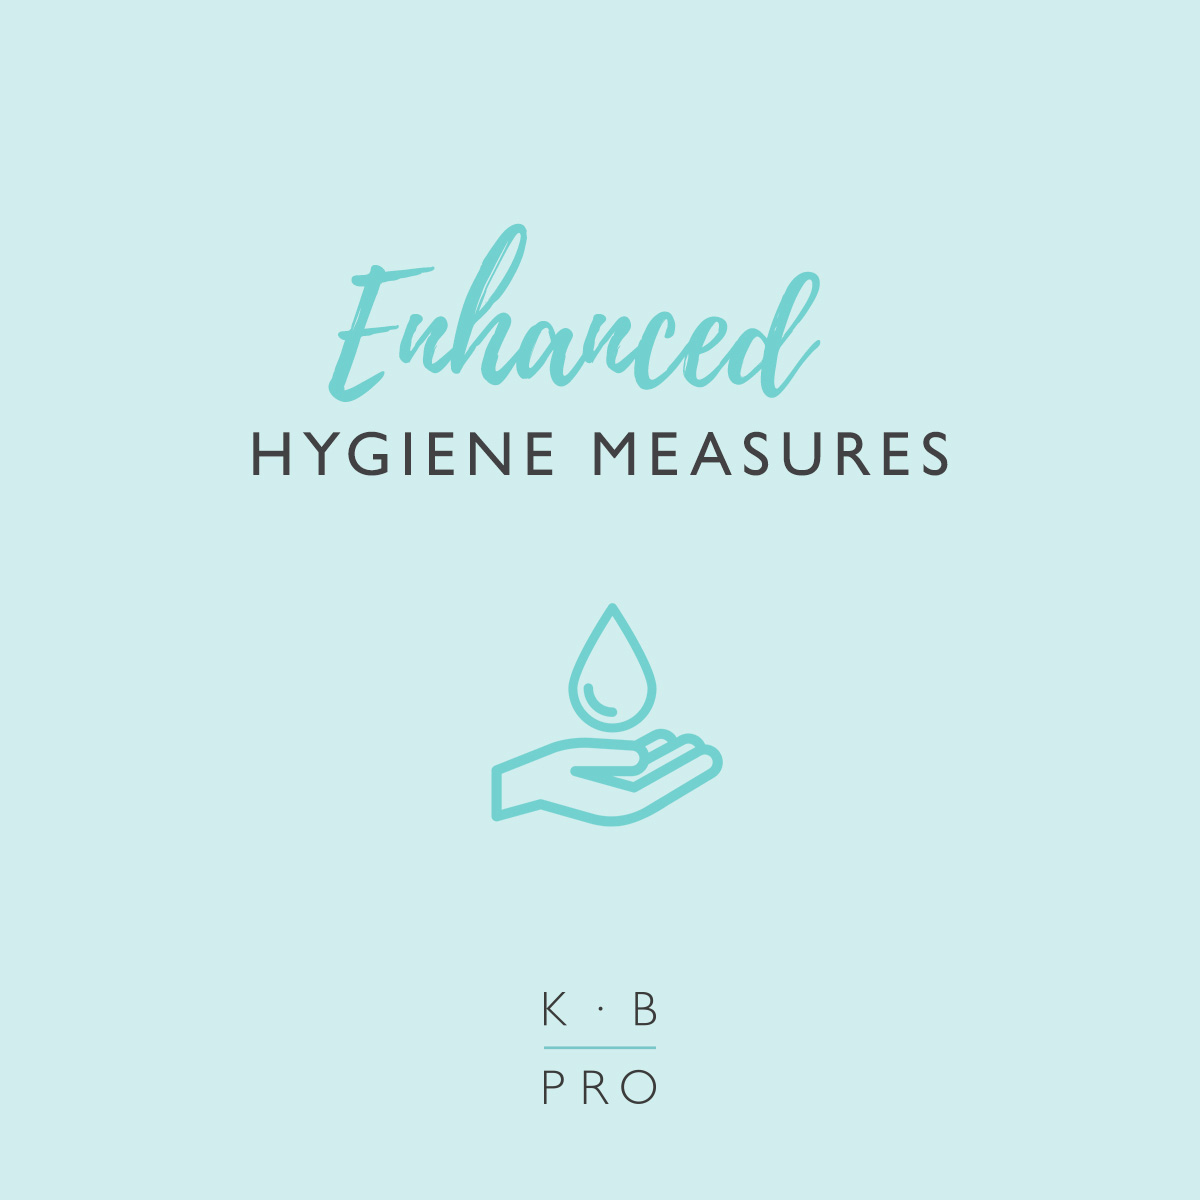 Enhanced hygiene measures